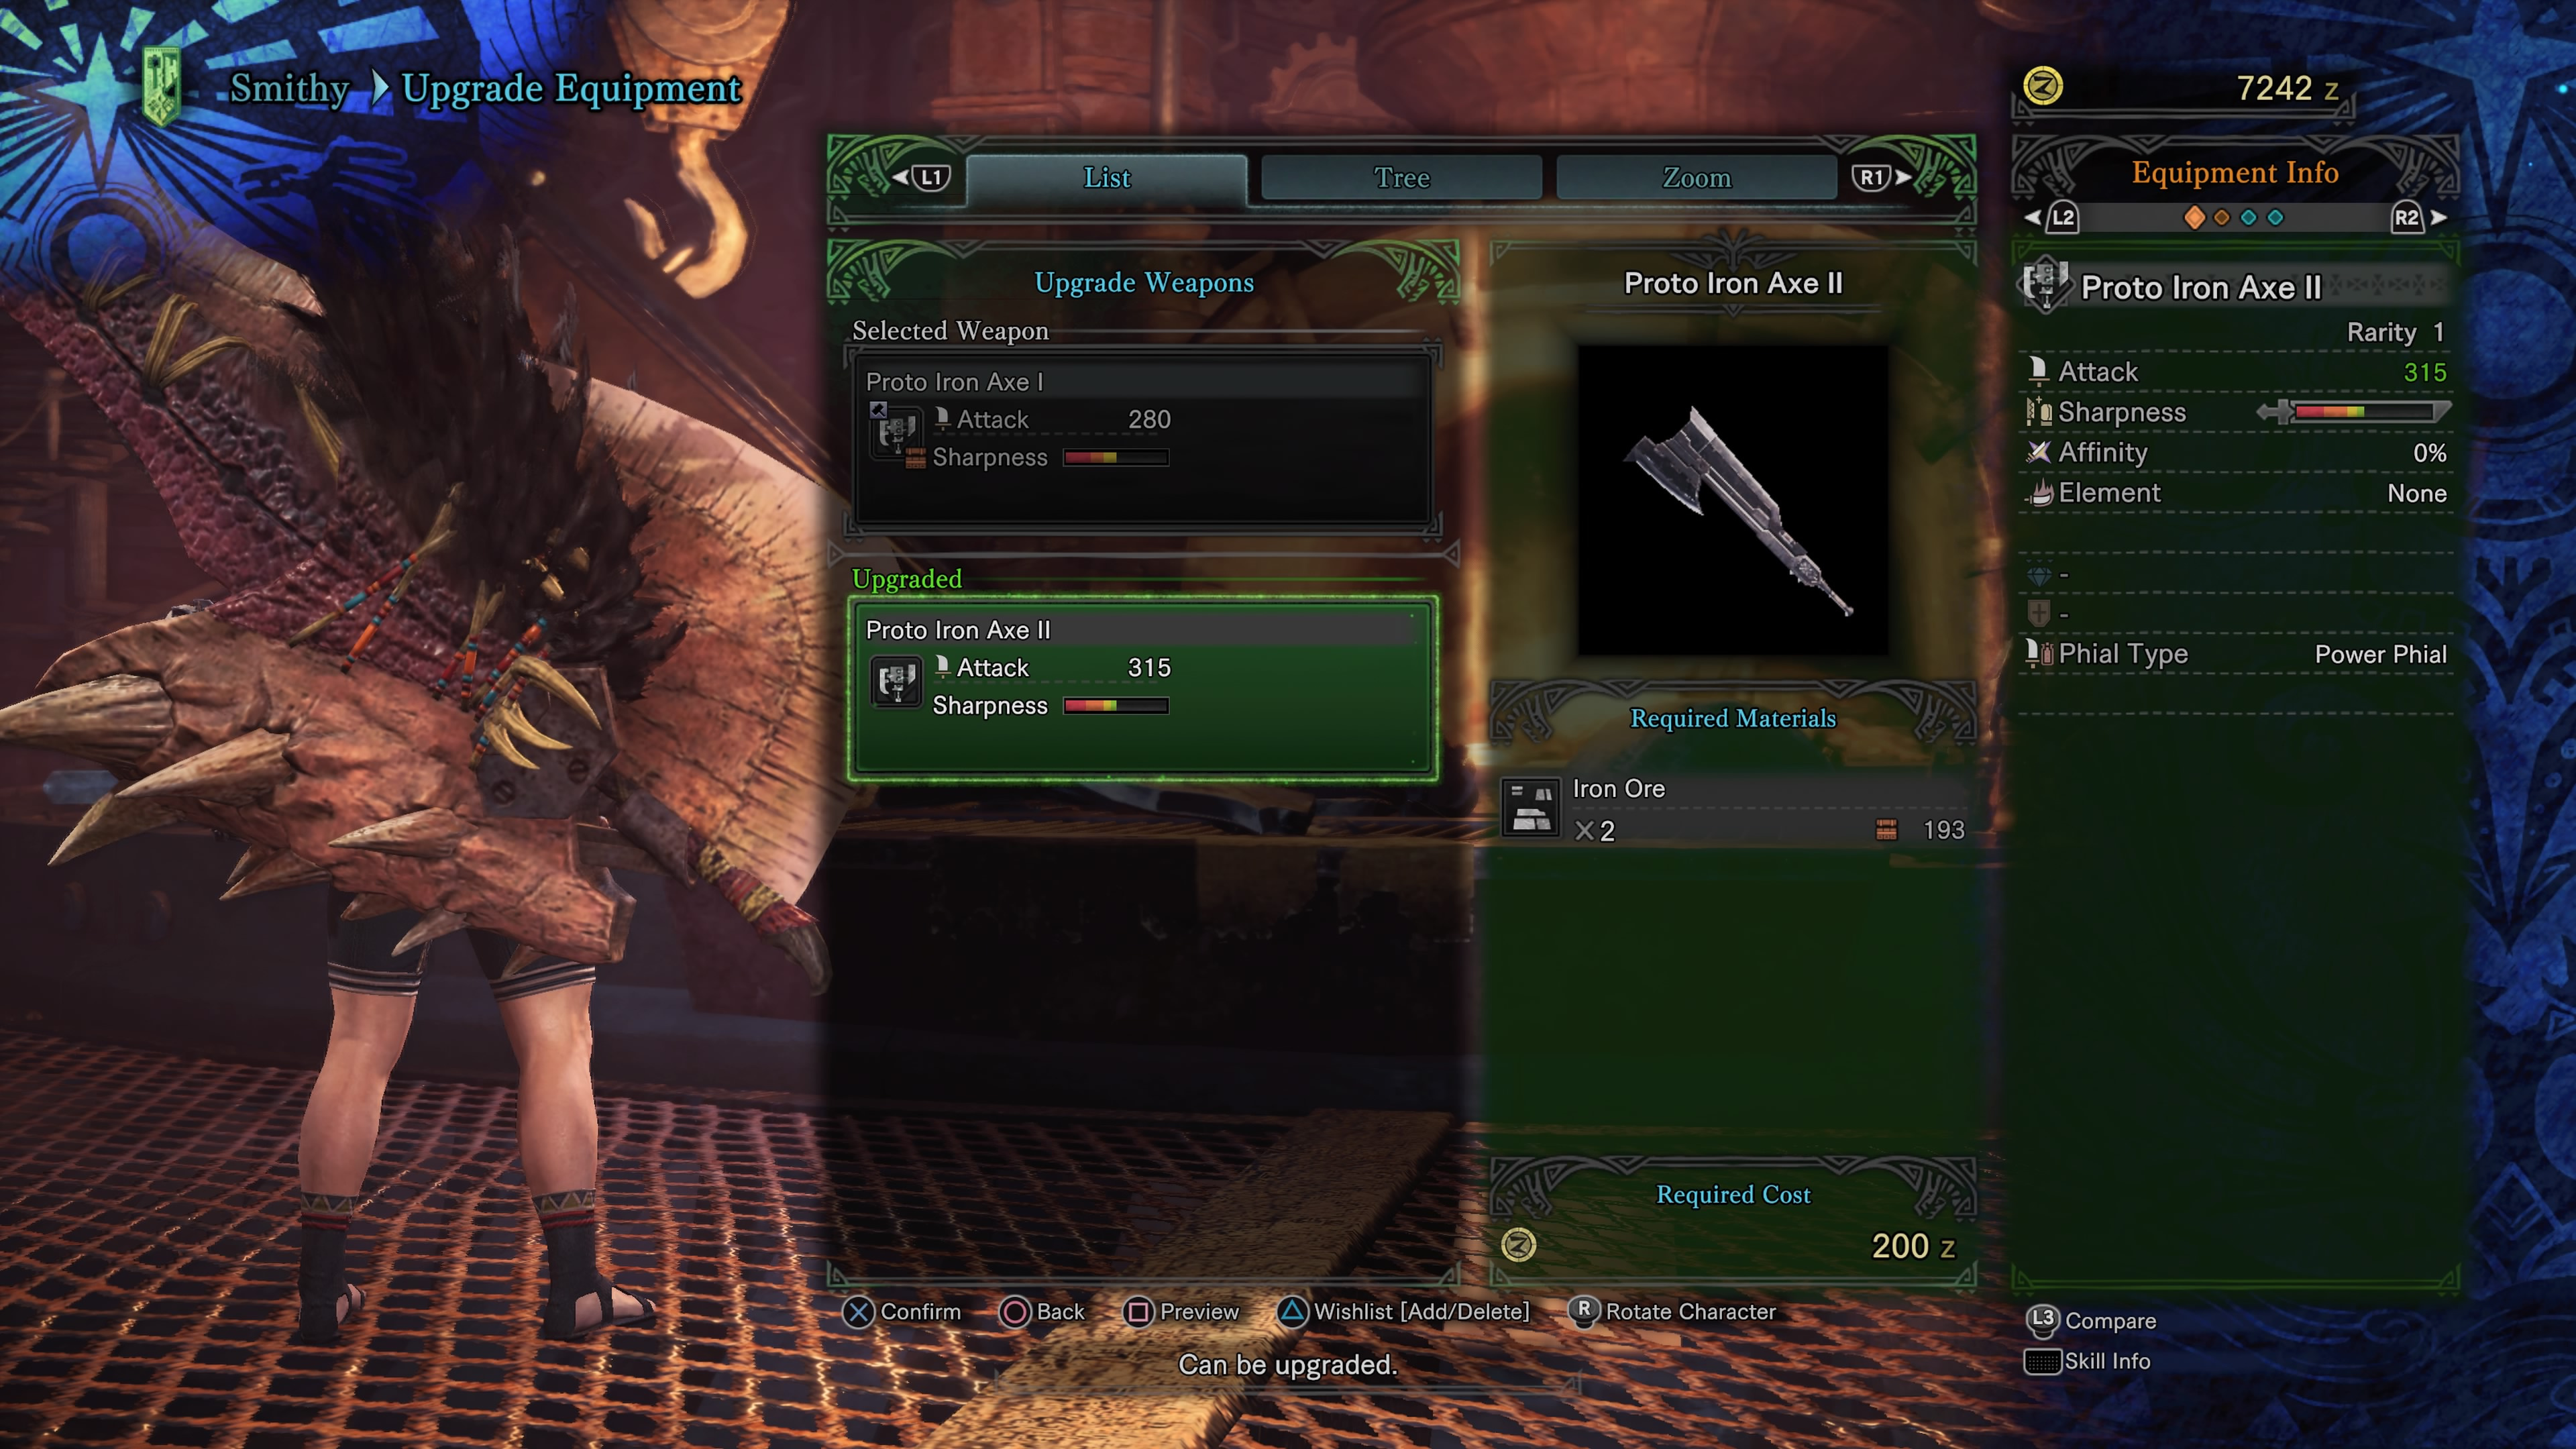 Monster hunter world weapons all switch axes upgrade for Decoration list monster hunter world